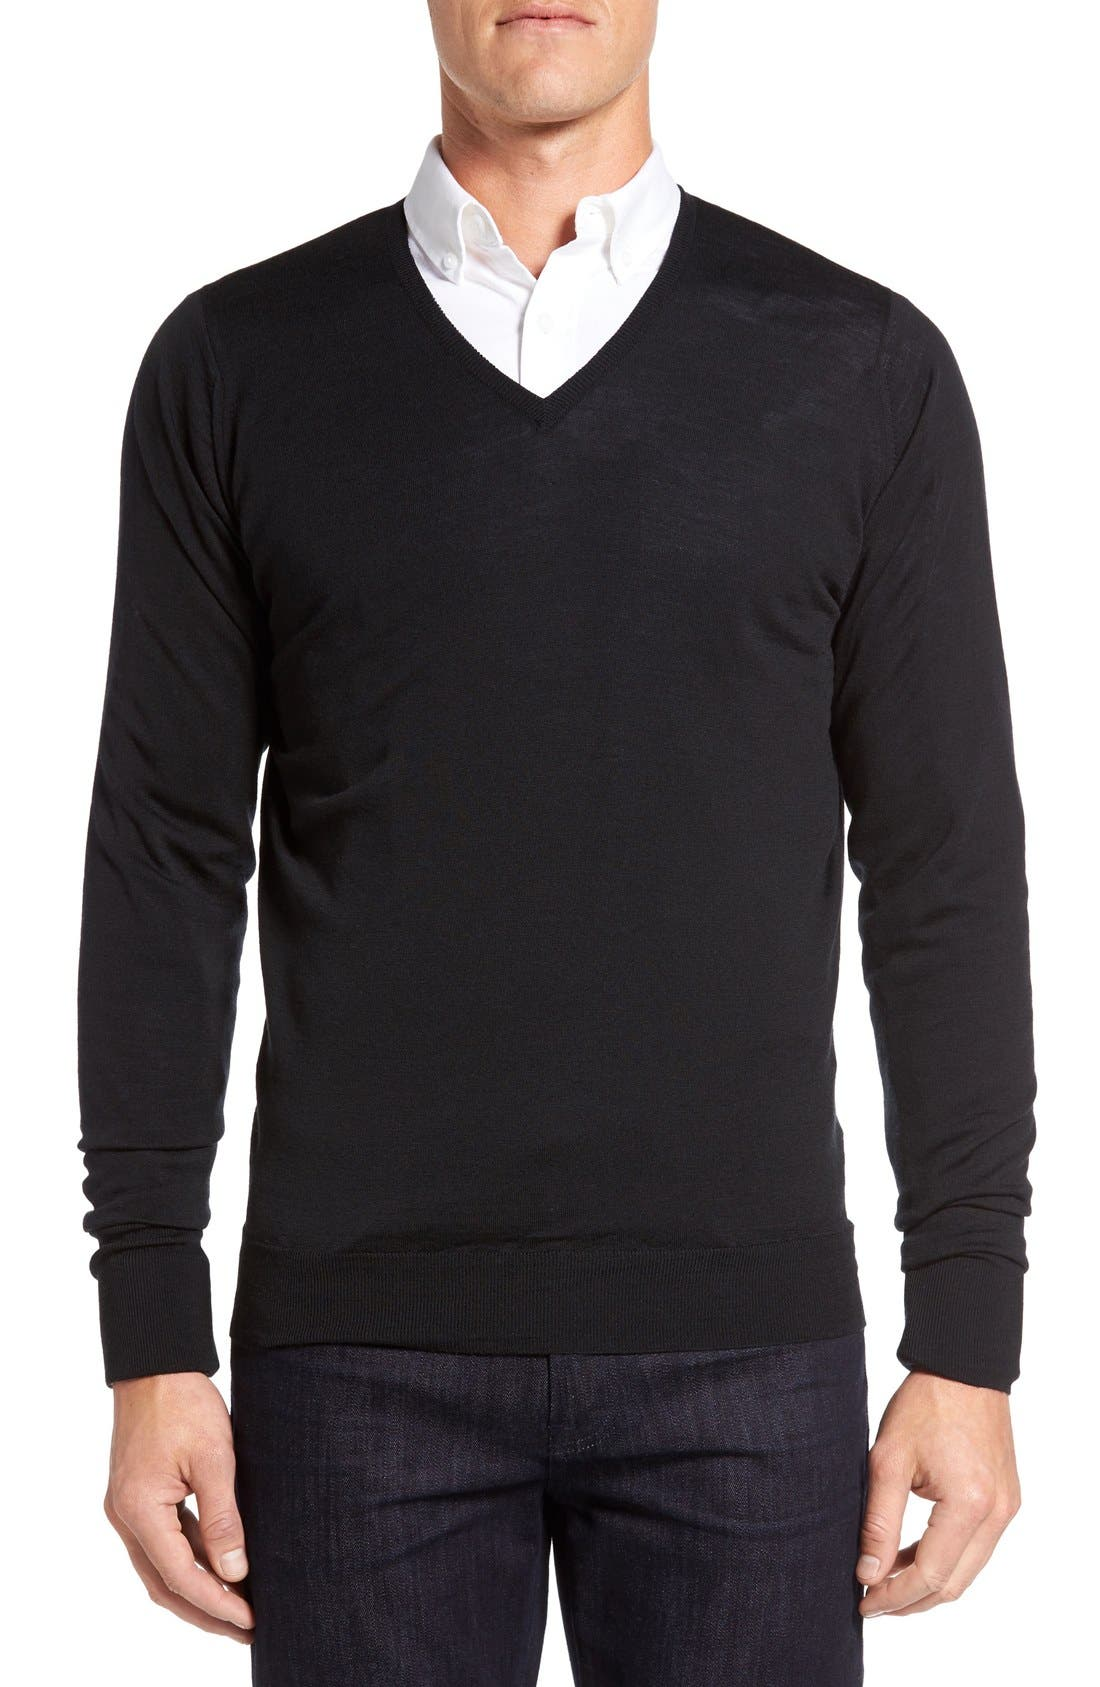 'Bobby' Easy Fit V Neck Wool Sweater,                         Main,                         color, Black